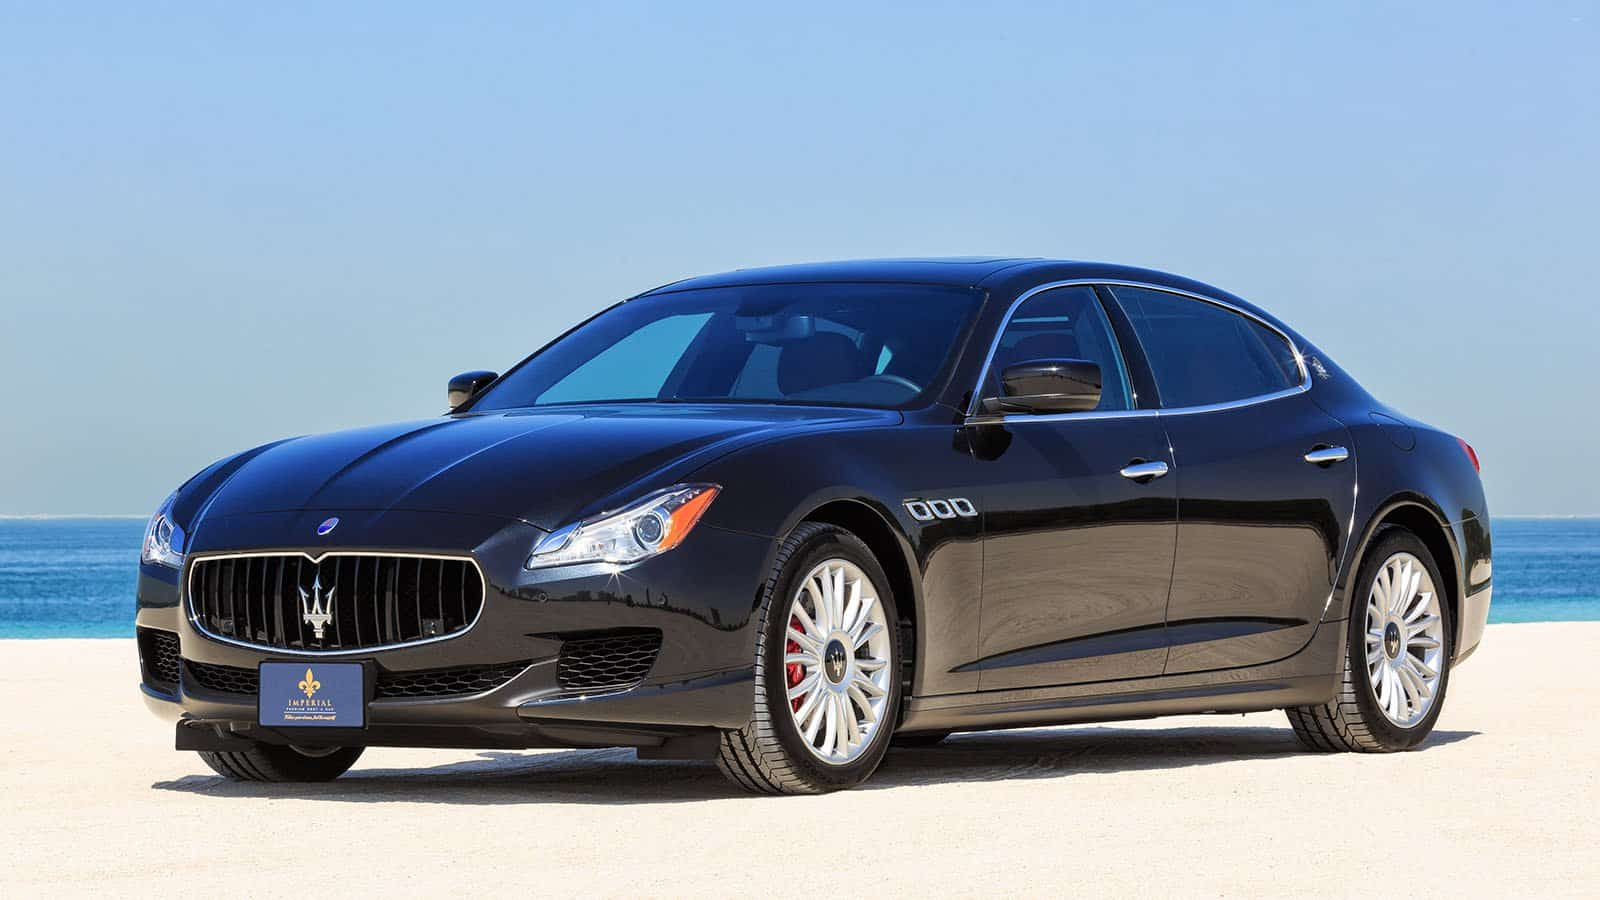 maserati quattroporte s rent dubai imperial premium rent a car. Black Bedroom Furniture Sets. Home Design Ideas